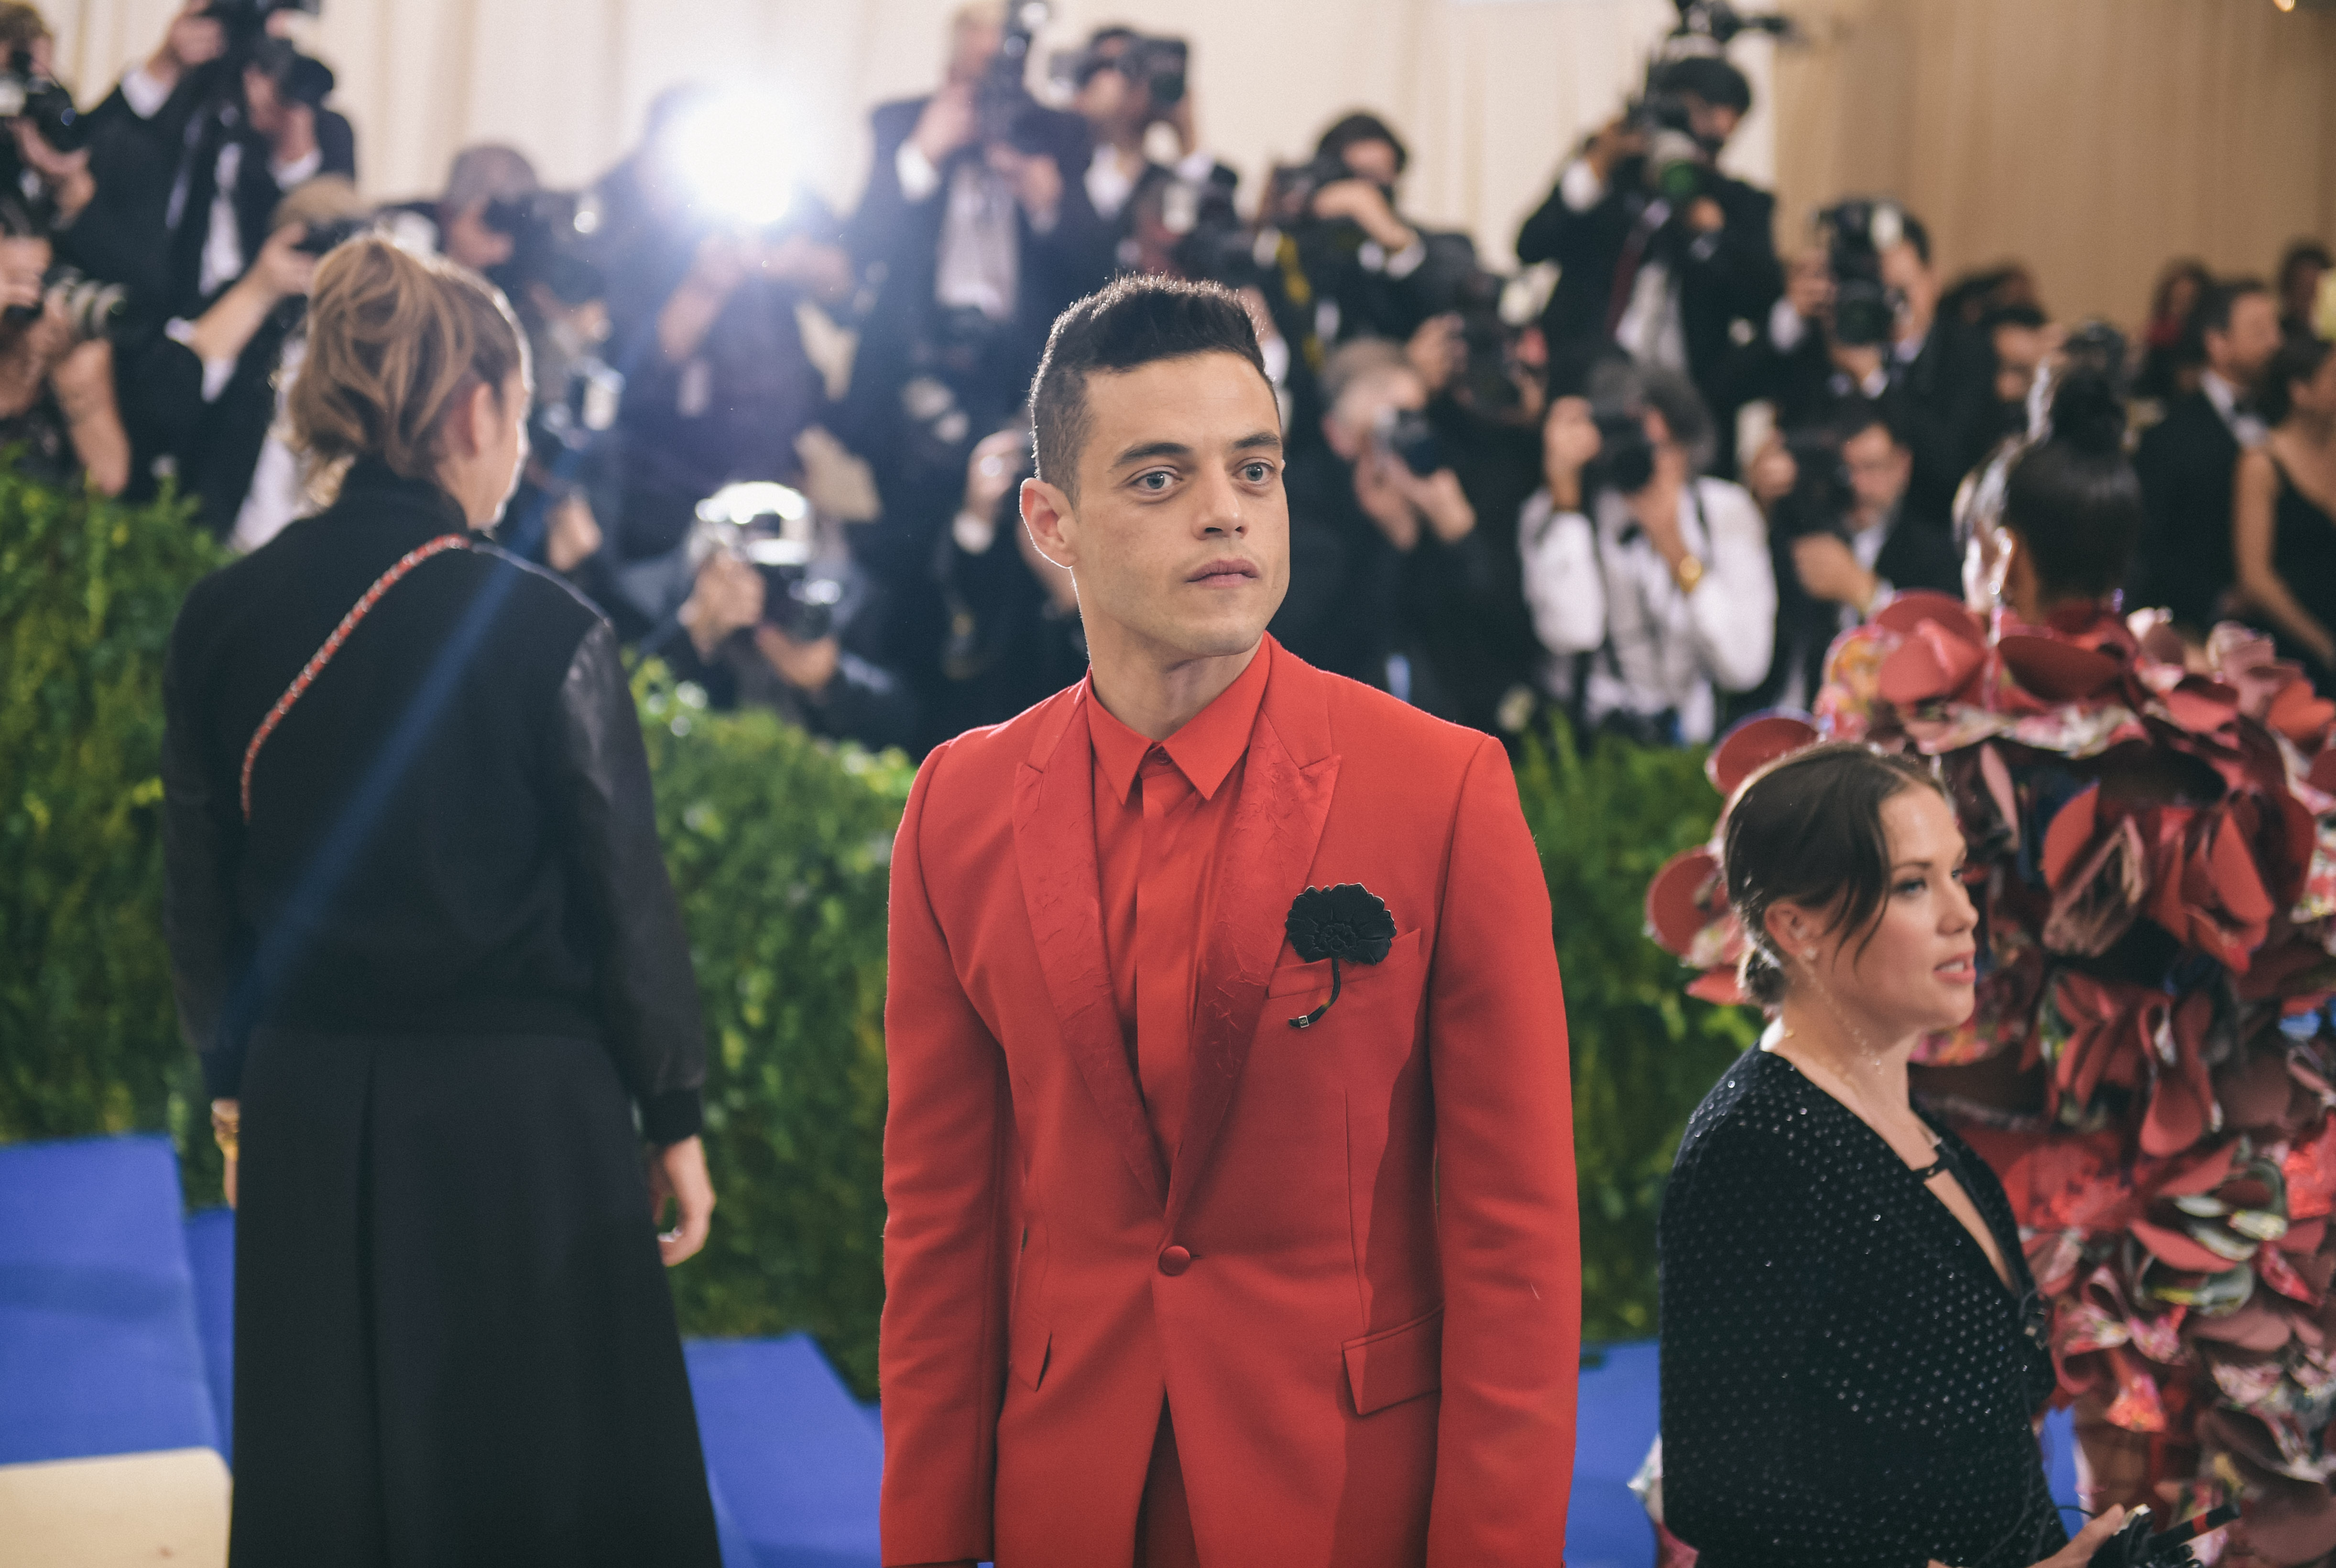 Actor Rami Malek attends the 'Rei Kawakubo/Comme des Garcons: Art Of The In-Between' Costume Institute Gala at Metropolitan Museum of Art in New York, NY on May 1, 2017.